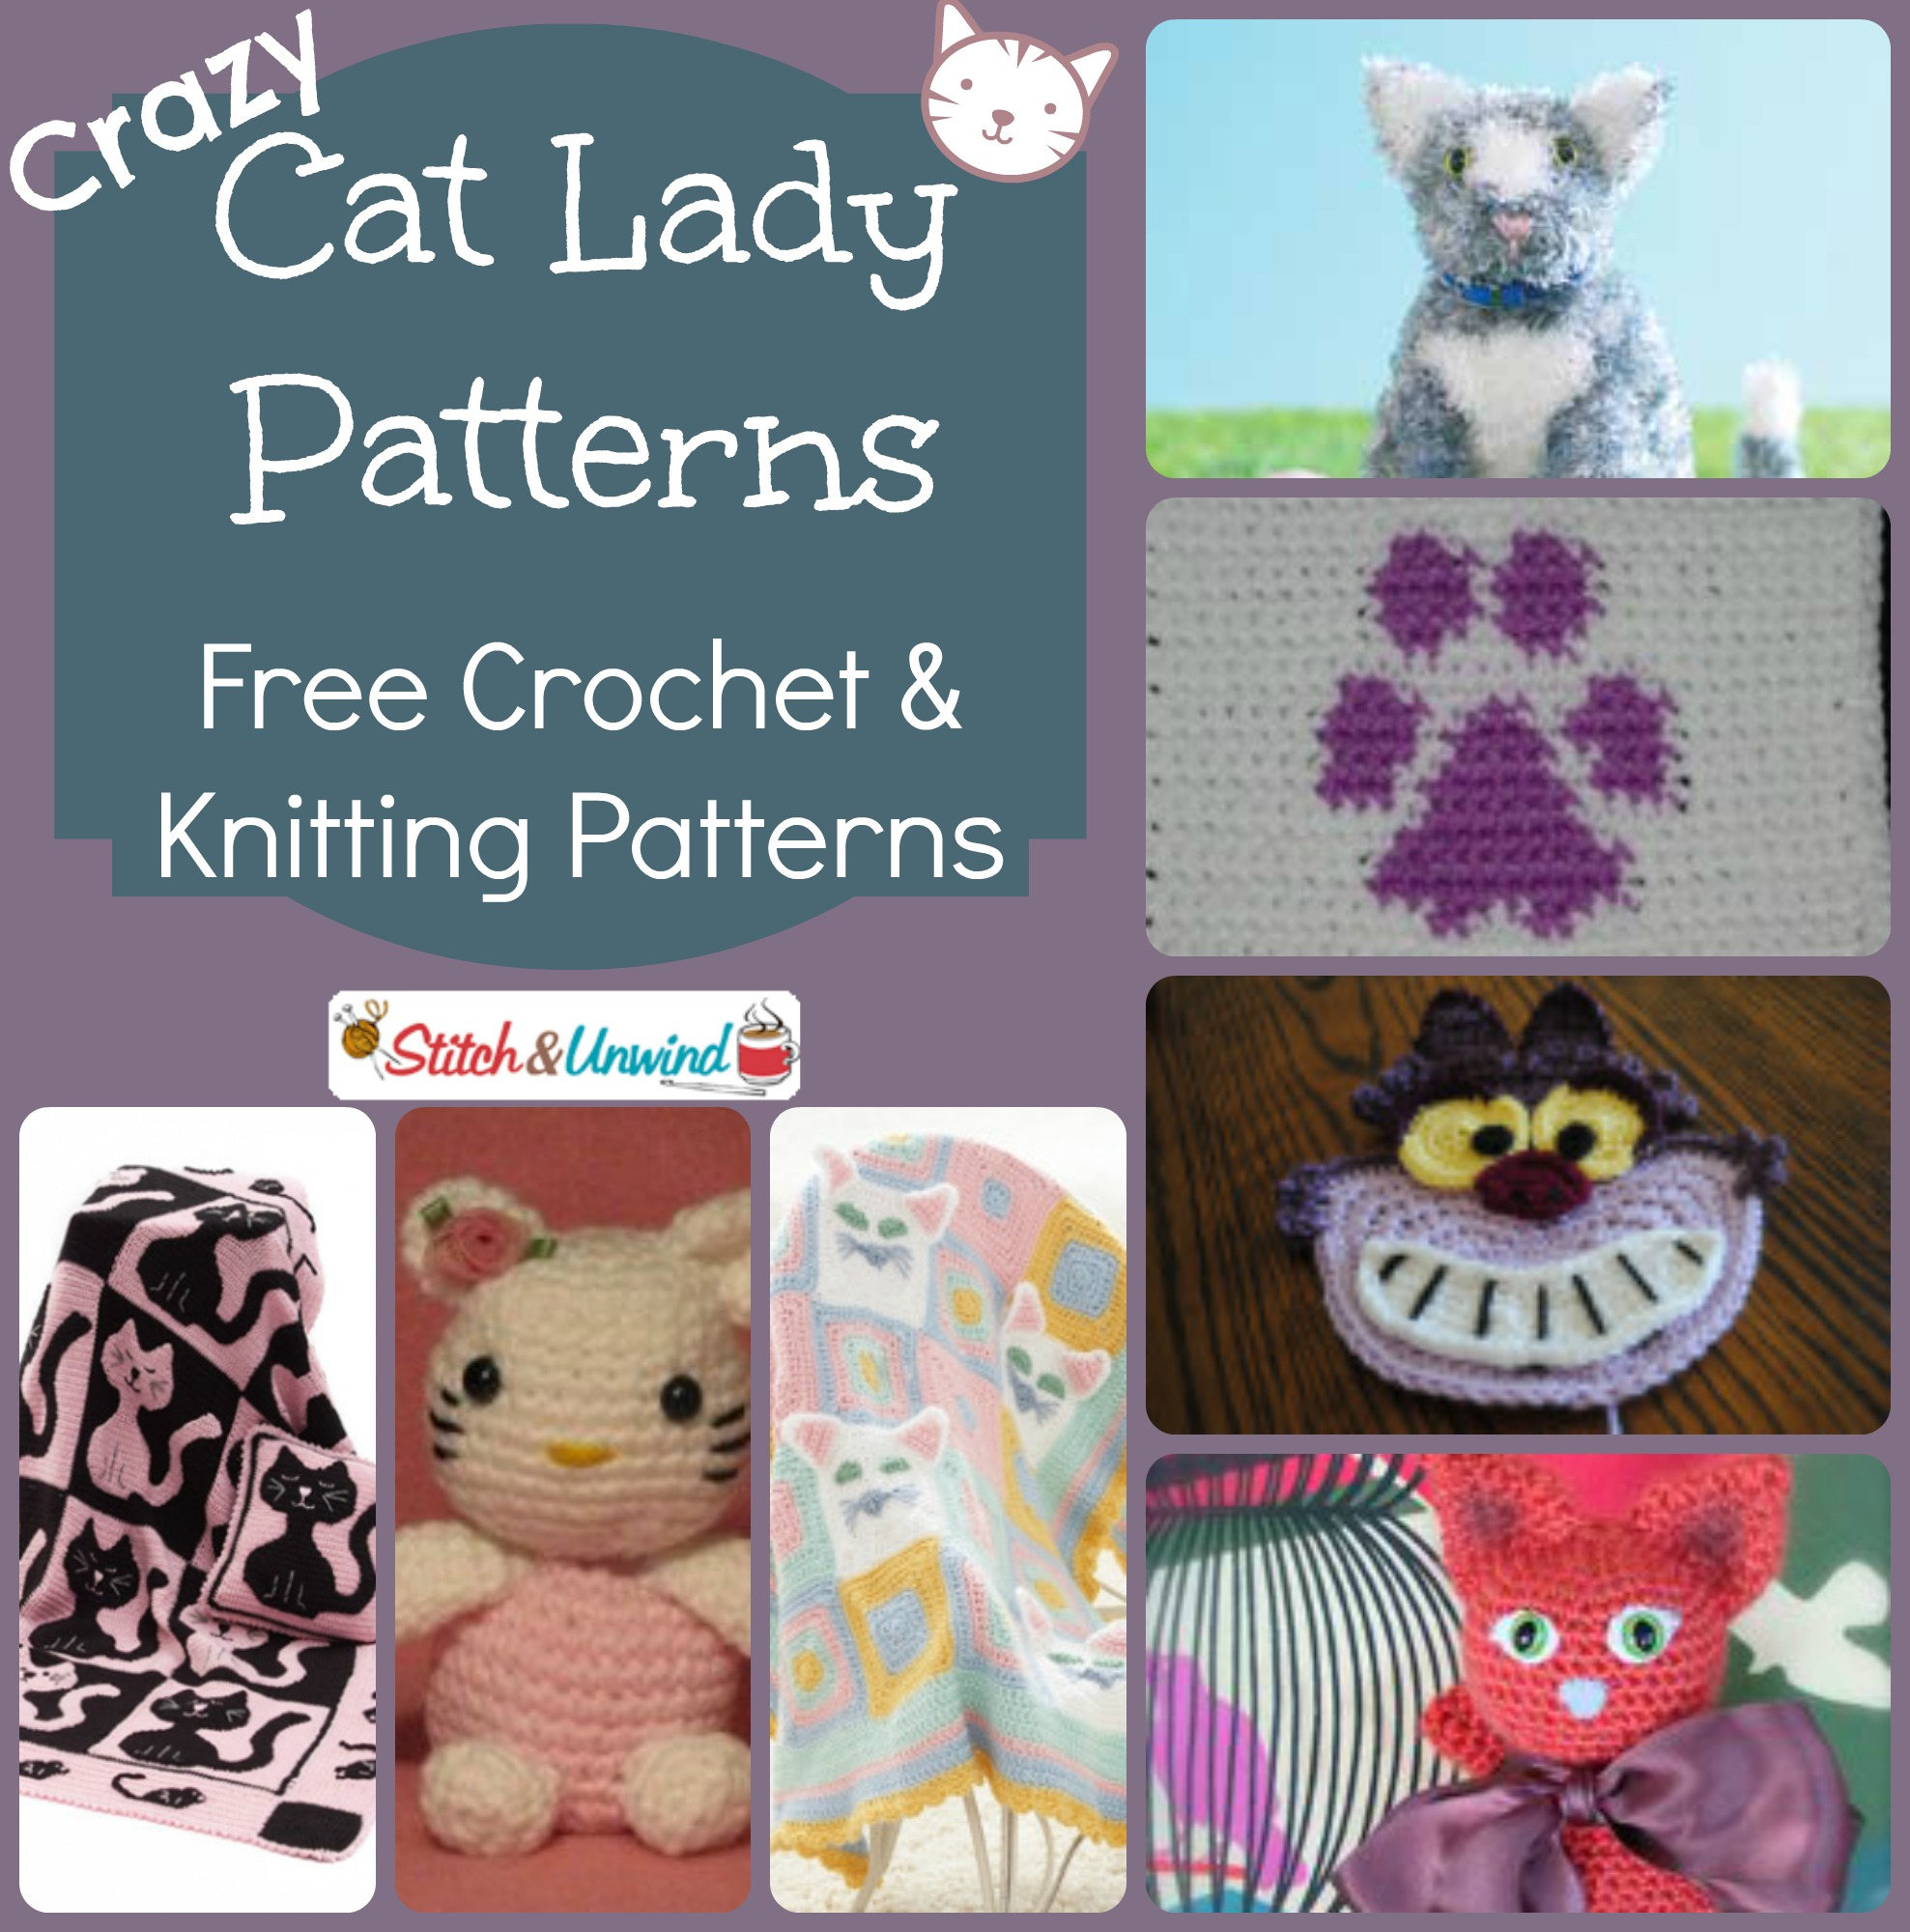 Free Knitting And Crochet Patterns Online : Crazy Cat Lady Patterns: Free Crochet & Knitting Patterns - Stitch and Un...